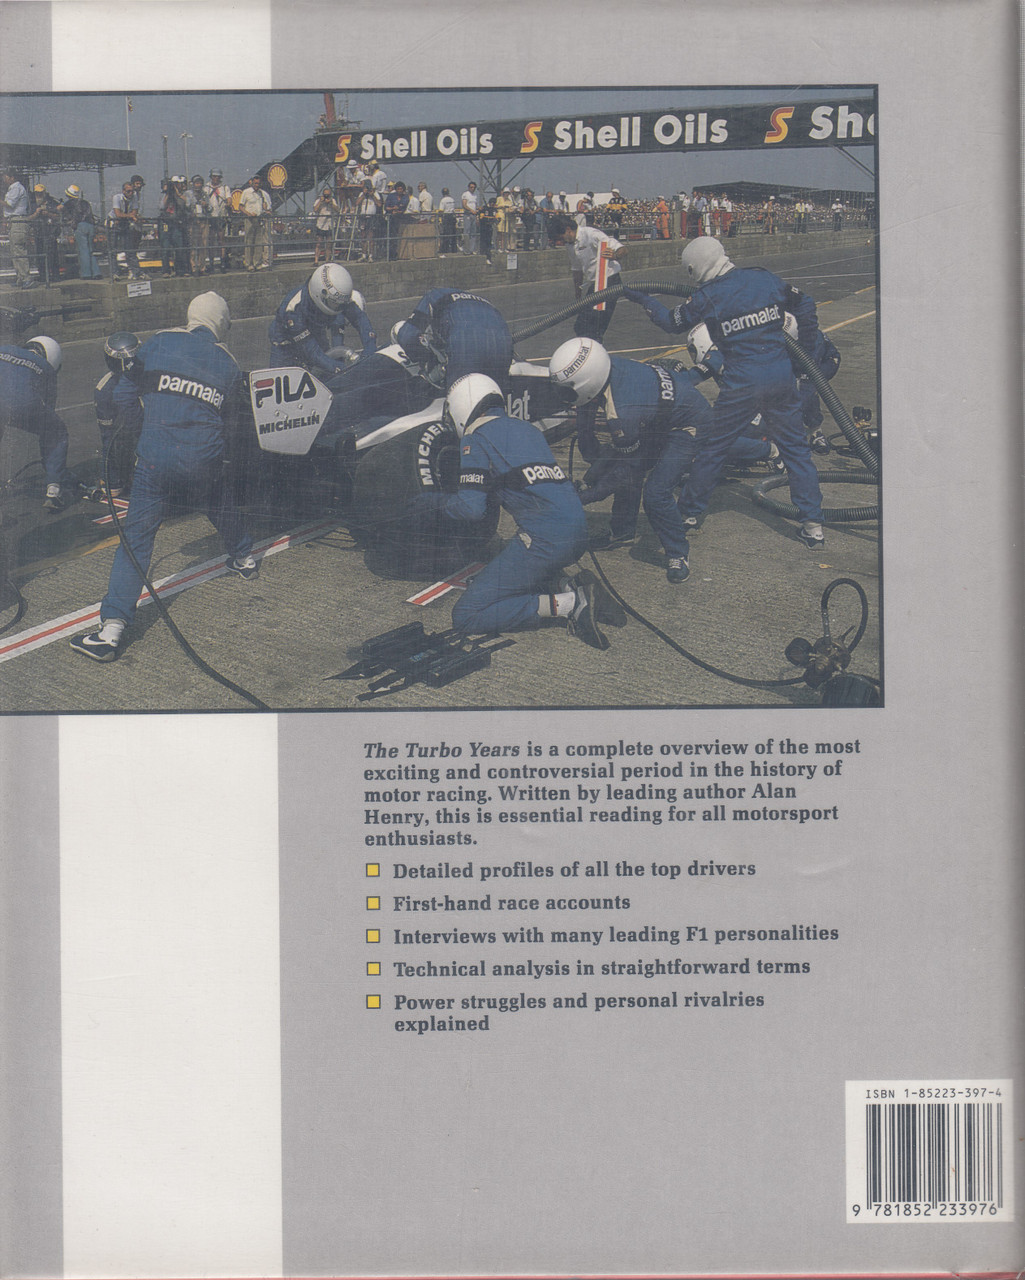 The Turbo Years - Grand Prix Racing's Battle for Power (Alan Henry)  Hardcover, 1st Edn  1990